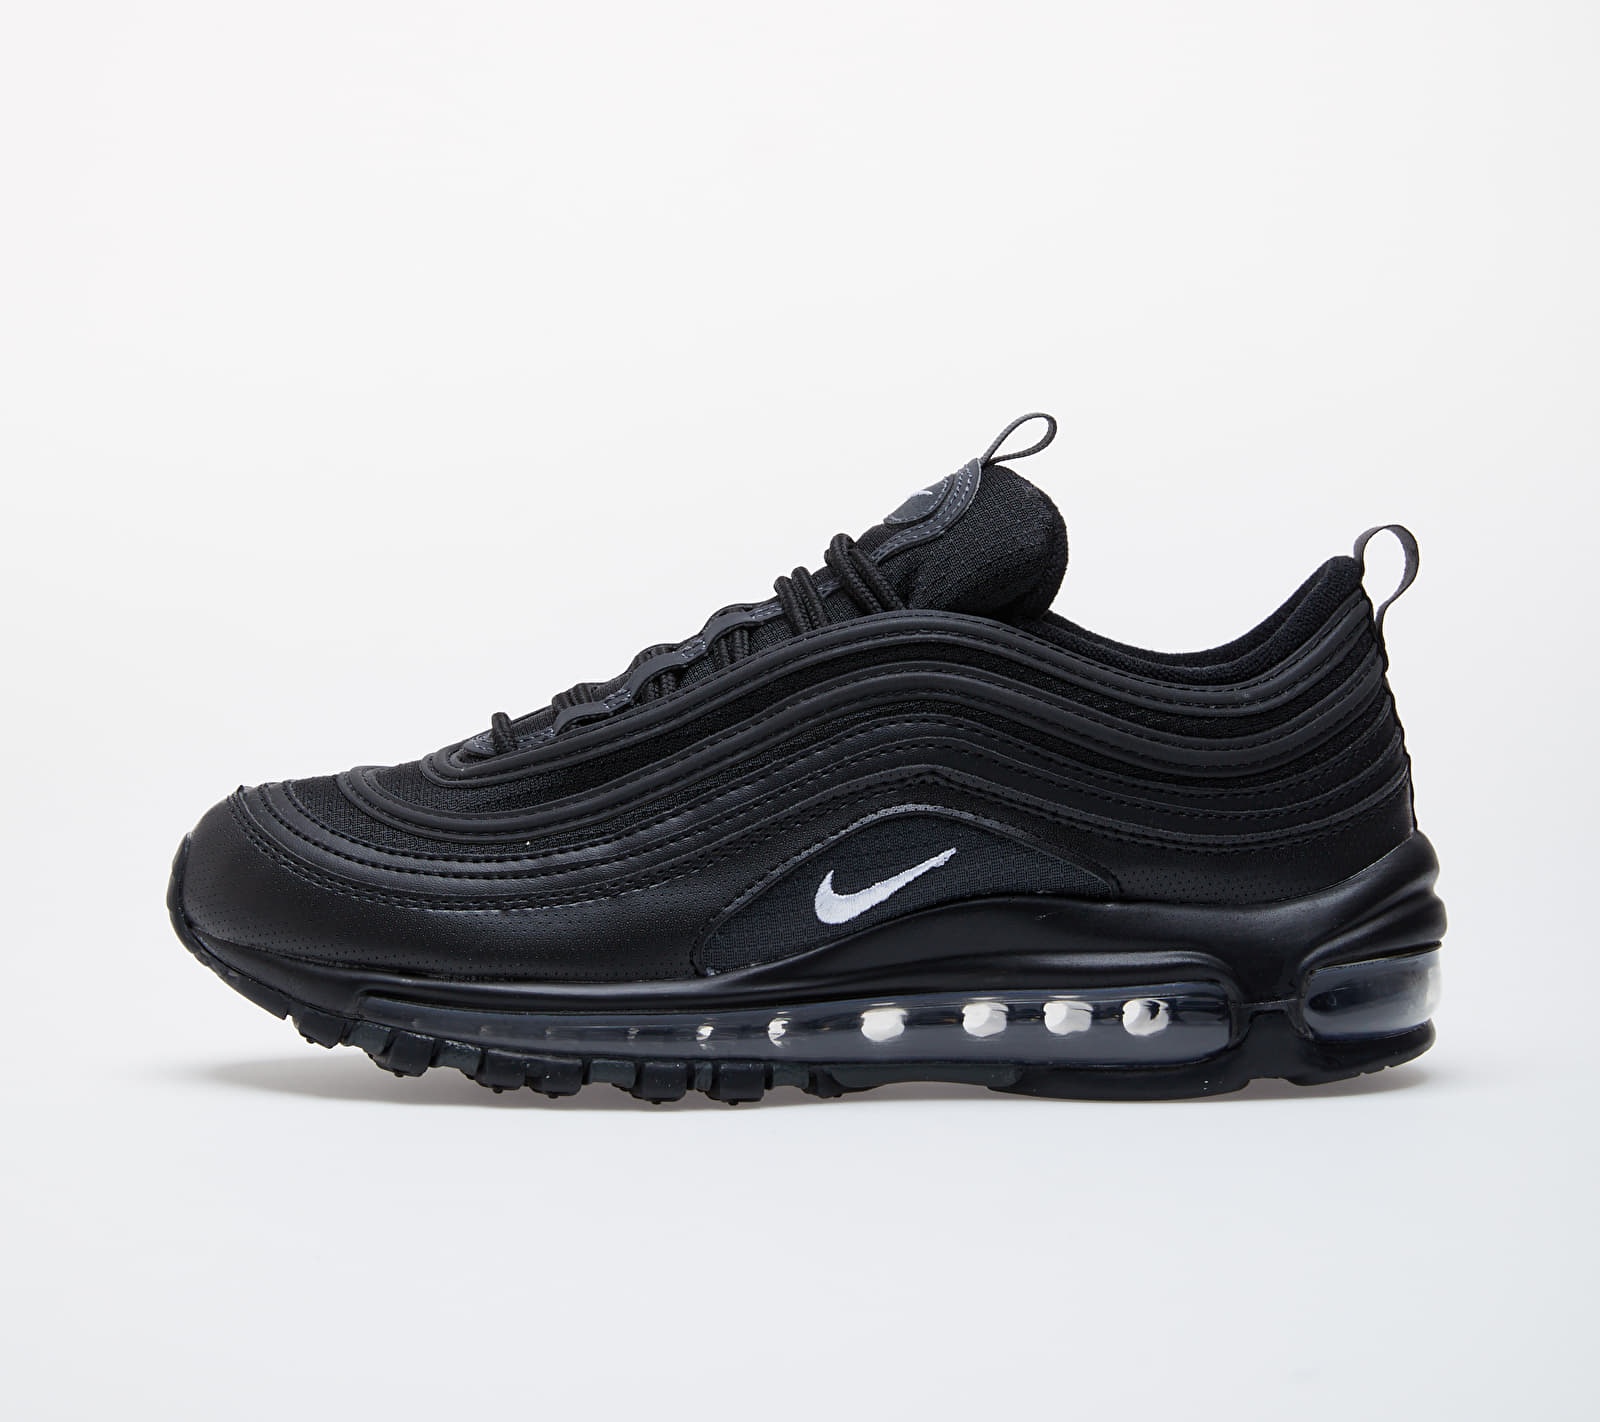 Nike Air Max 97 (GS) Black/ White-Anthracite EUR 38.5